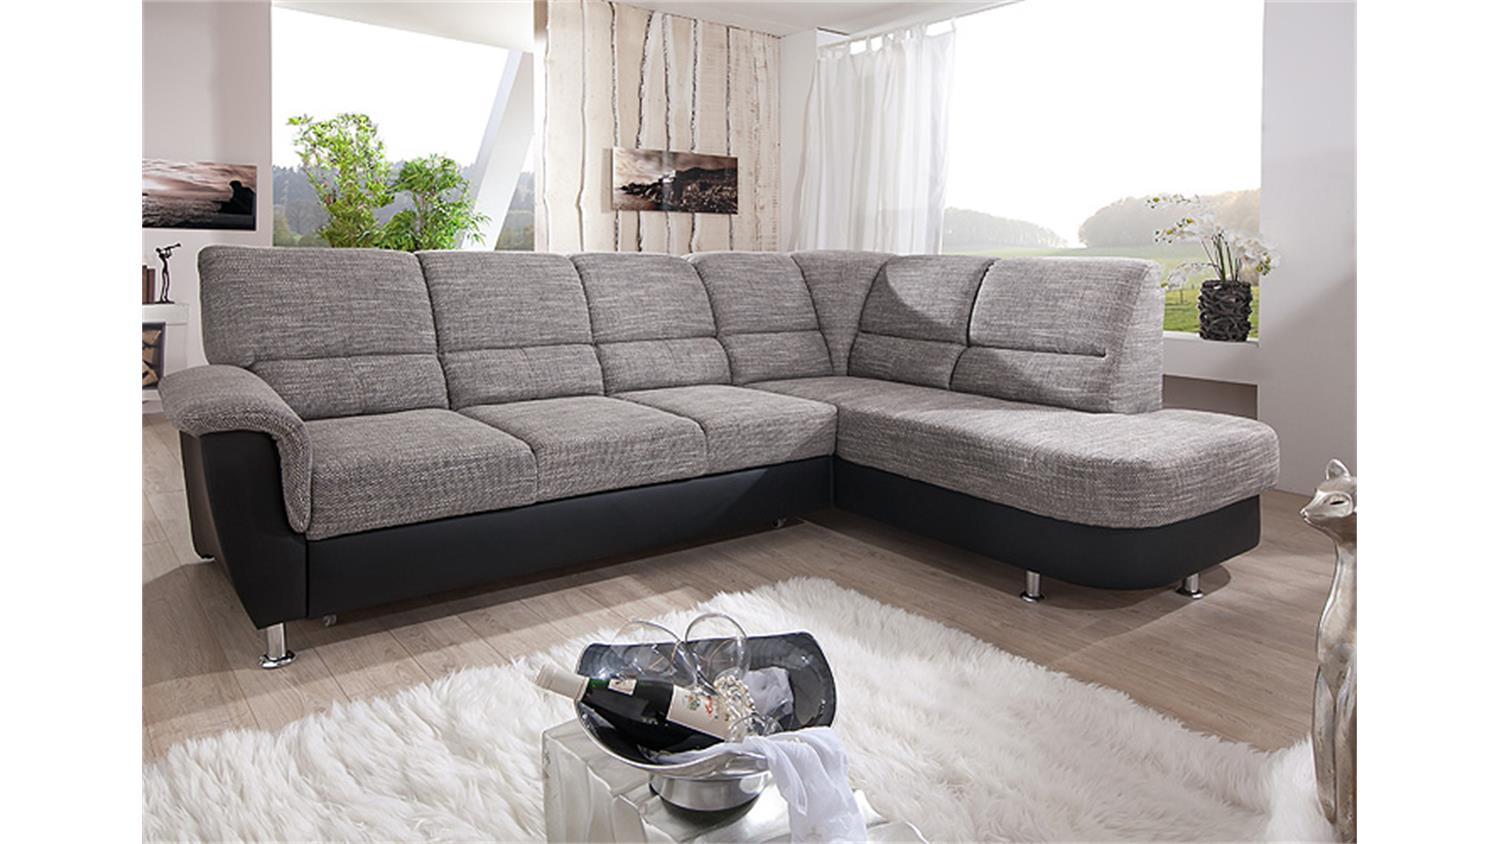 ecksofa pisa sofa stoff grau schwarz mit bettfunktion. Black Bedroom Furniture Sets. Home Design Ideas